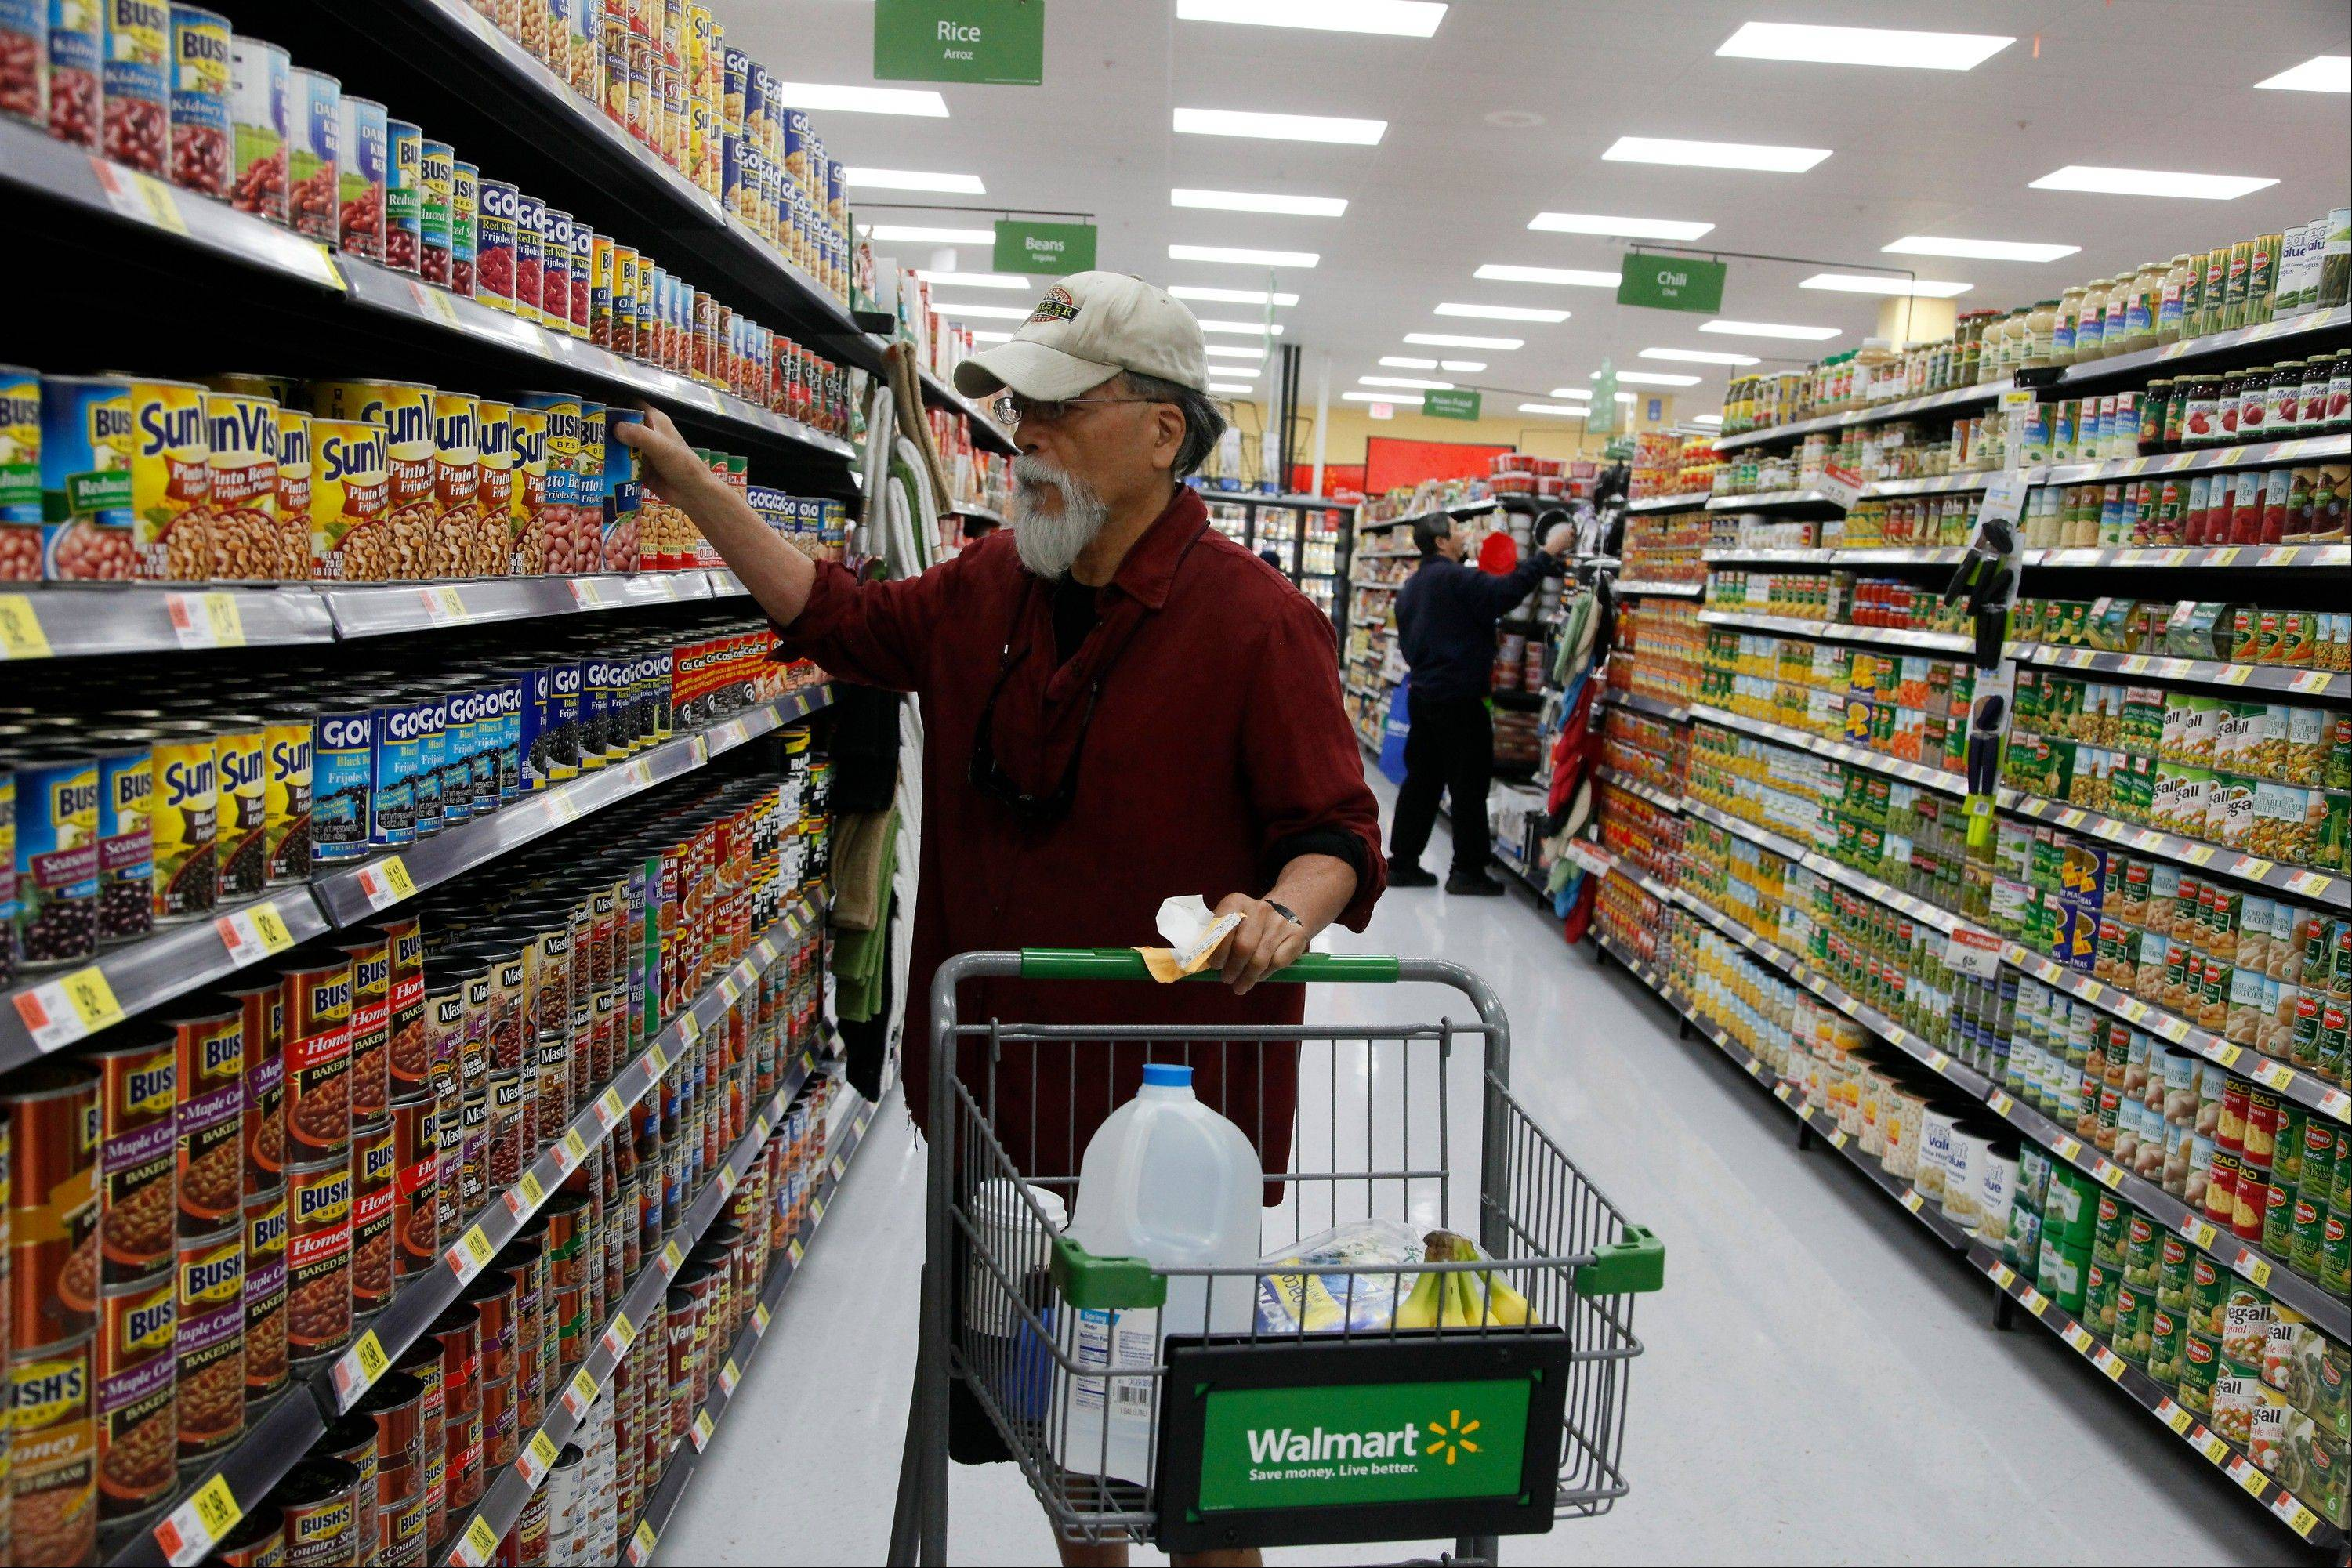 Consumer spending rose 0.2 percent in September, after at 0.3 percent gain the previous month, the Commerce Department reported Friday. Americans cut spending on long-lasting manufactured goods 1.3 percent. That partly reflected a drop in auto sales. Labor Day weekend auto sales were counted in August.